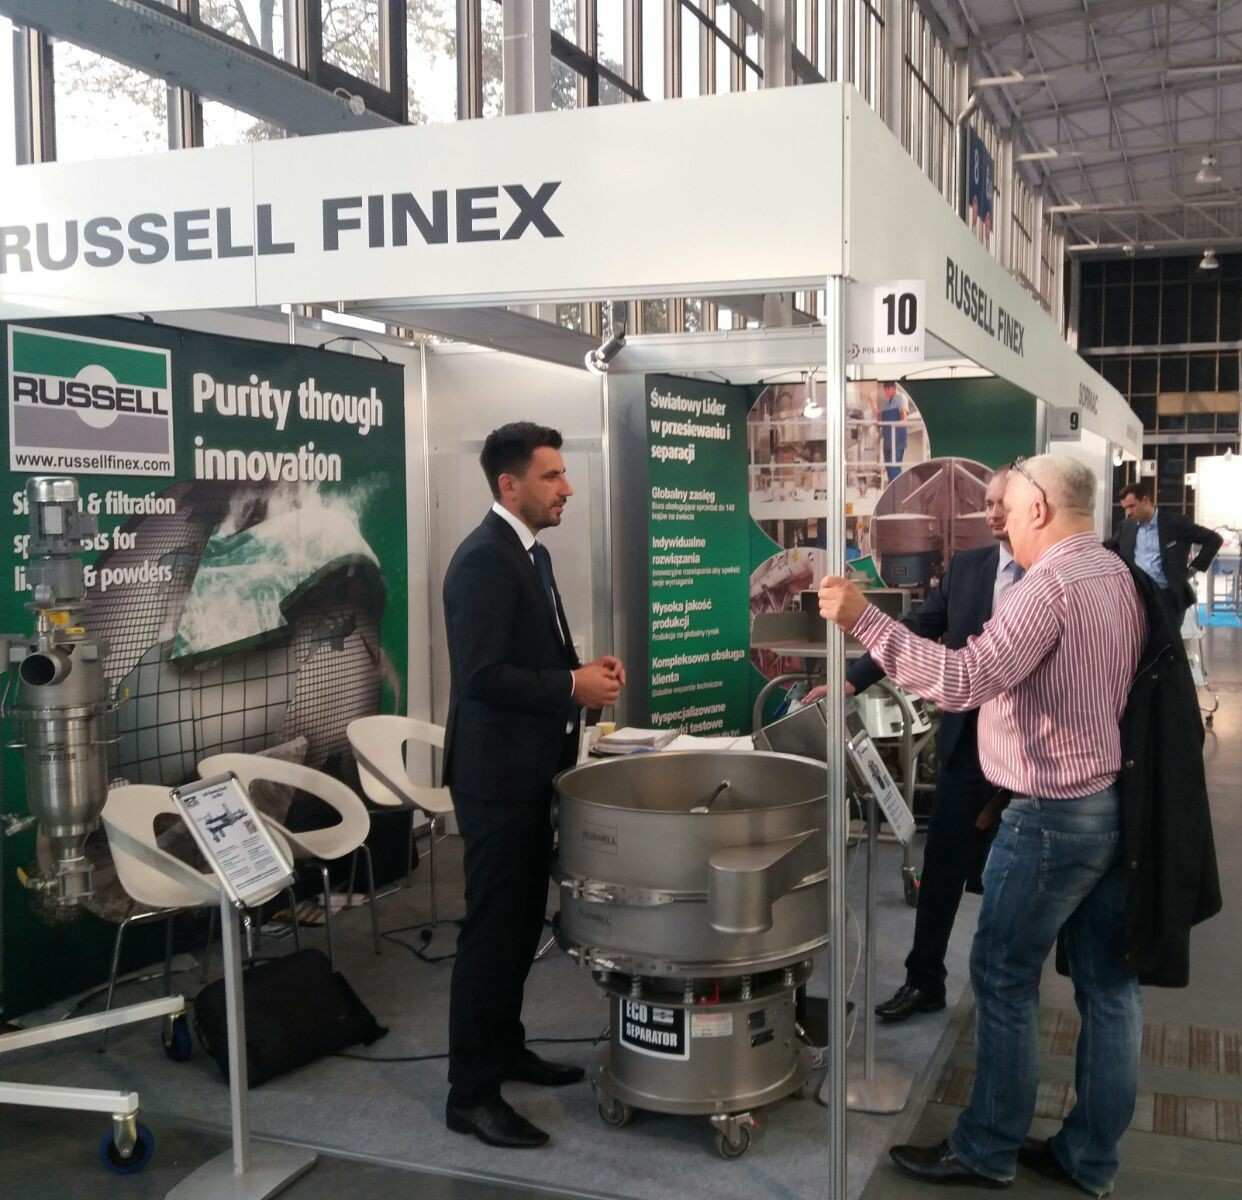 Russell Finex's high performance sieving machines were presented at POLAGRA-TECH